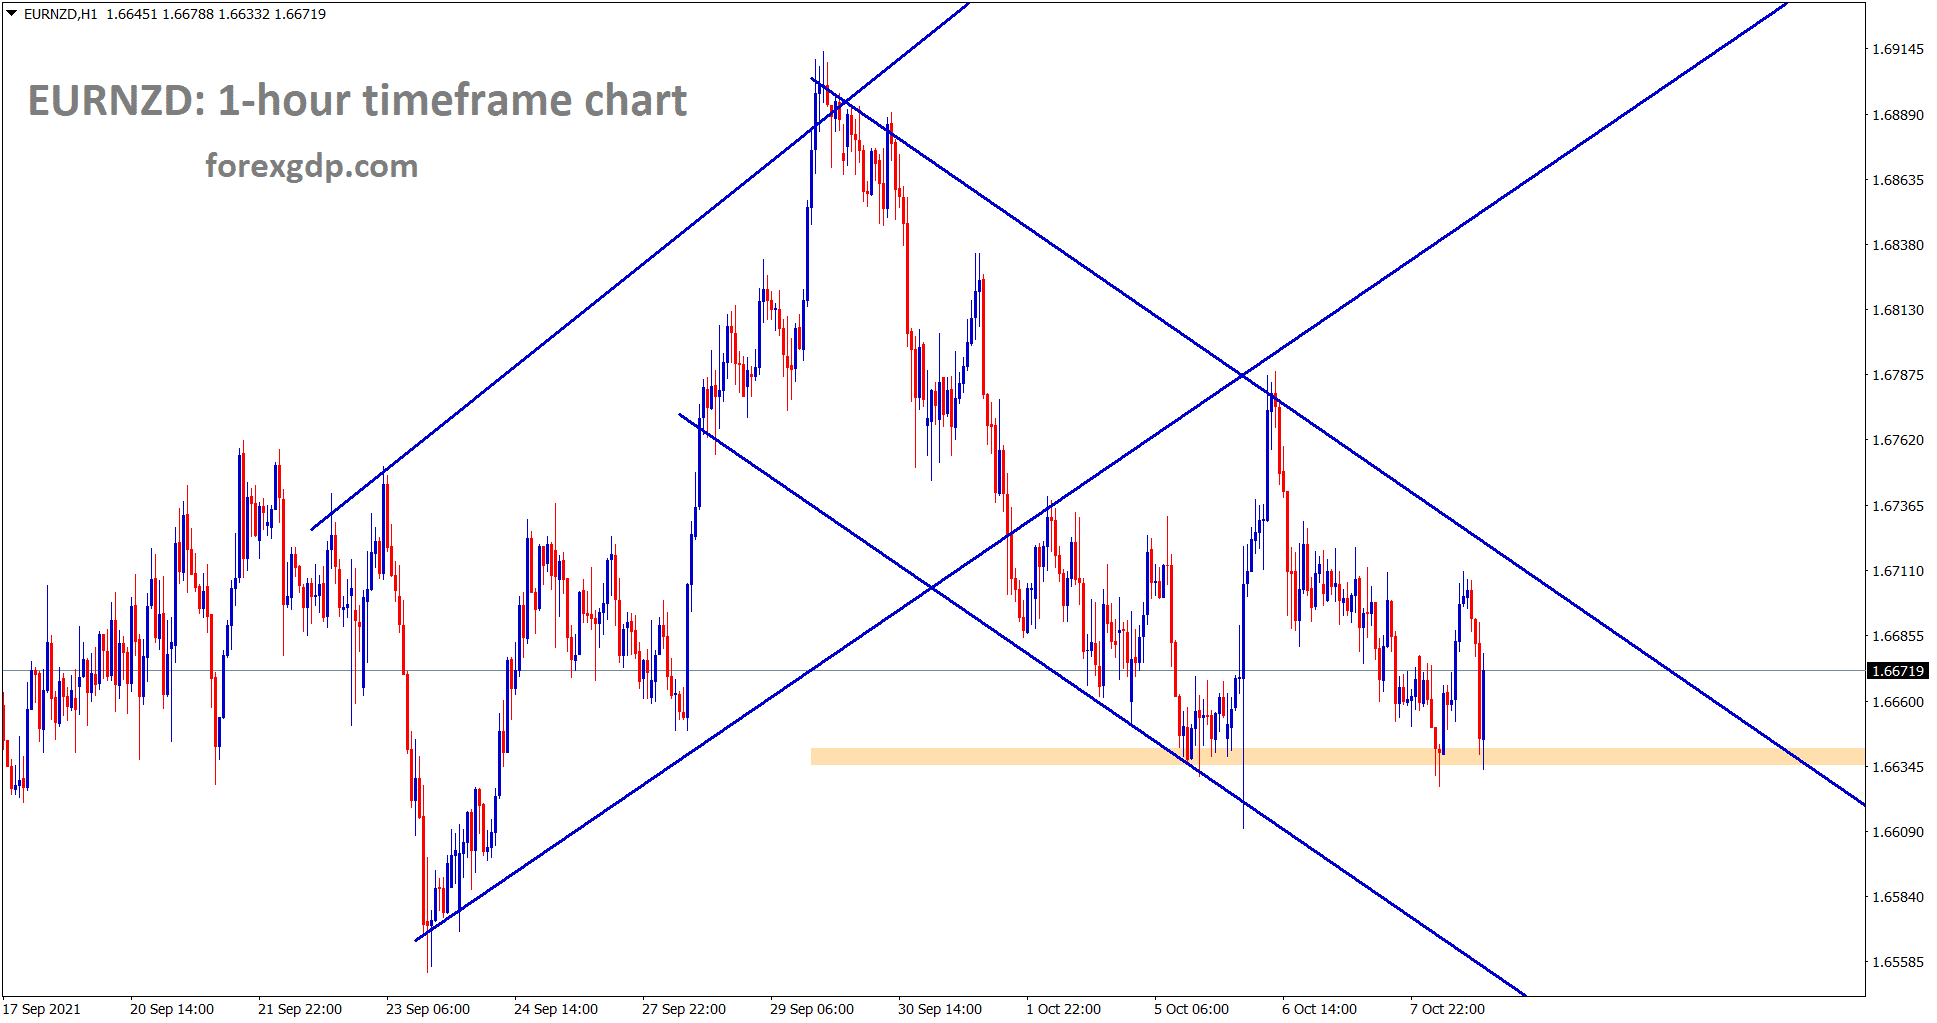 EURNZD is moving in a descending channel and ranging from the horizontal support